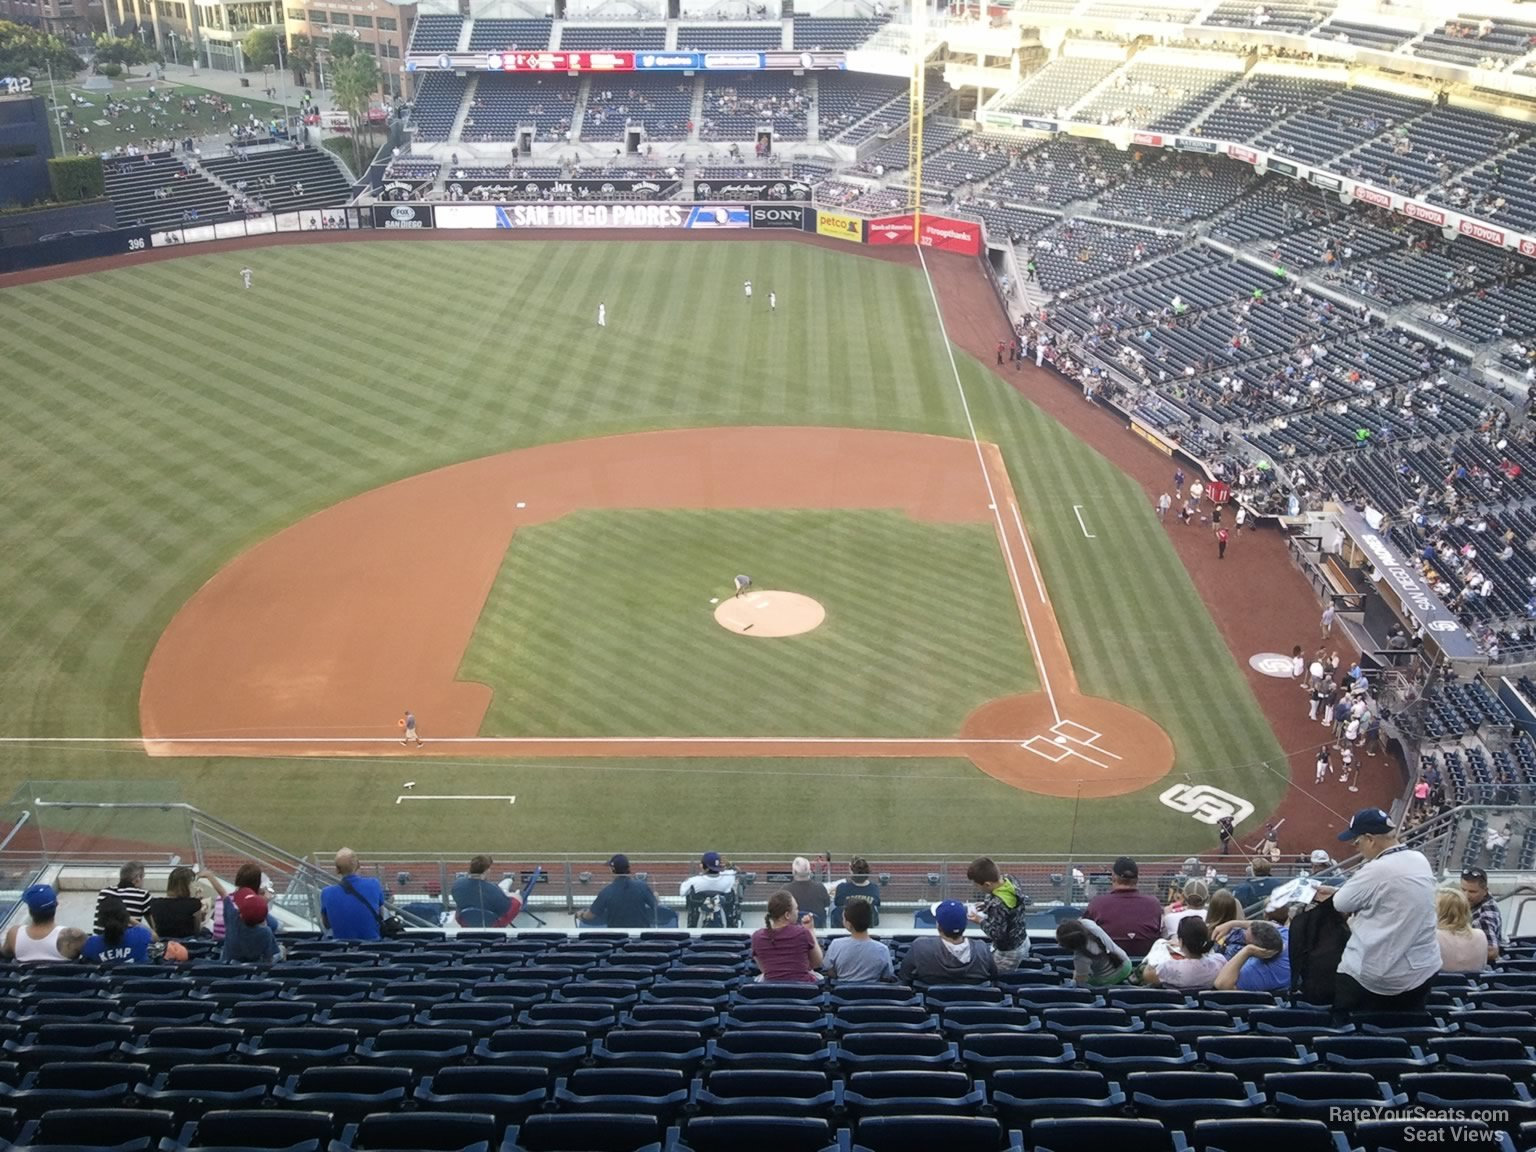 View from Section 310 Row 21 at Petco Park